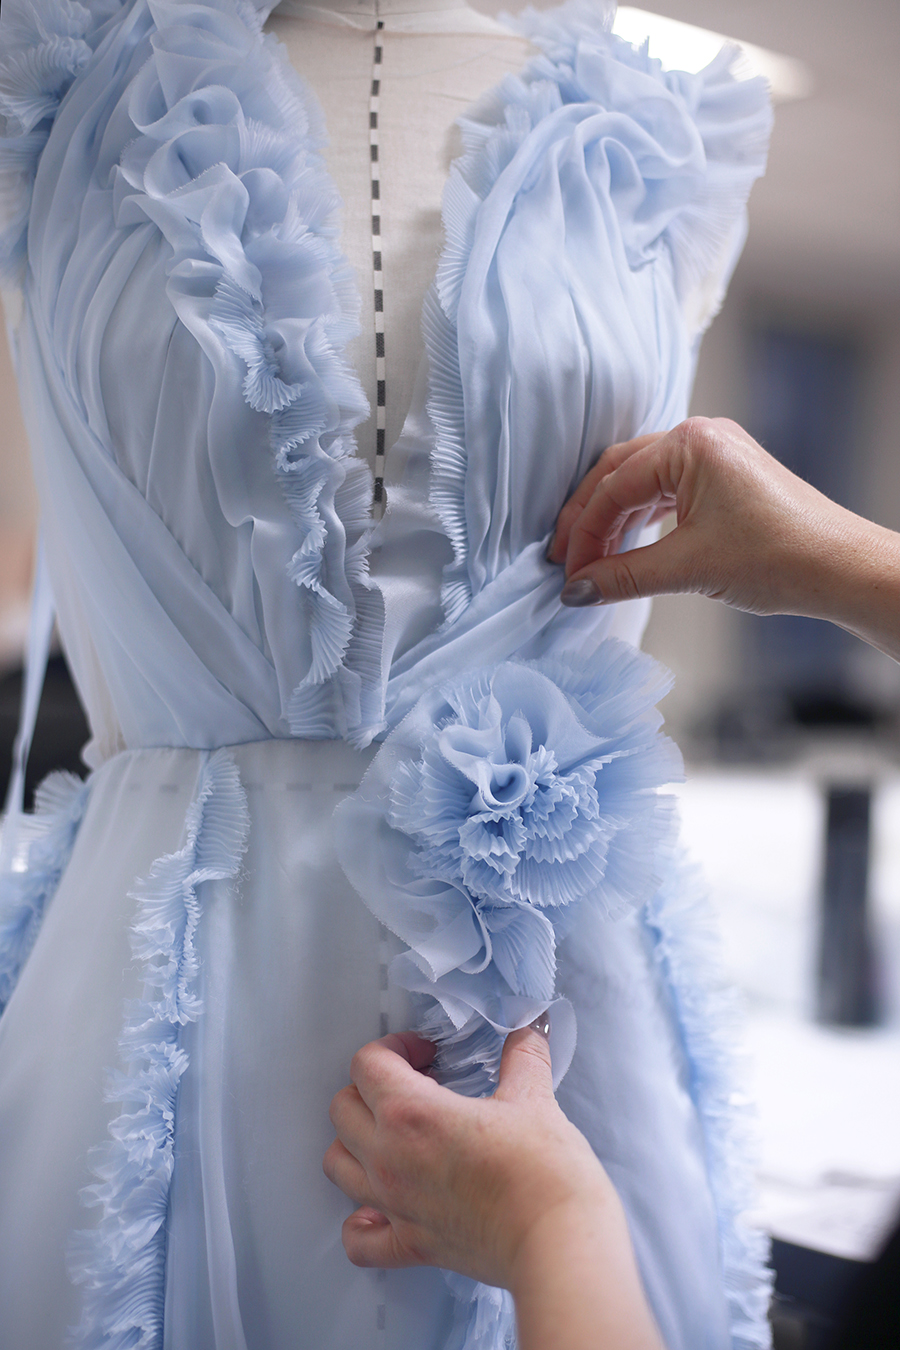 Backstage at Ralph & Russo couture, the atelier puts the final touches on Spring 2017